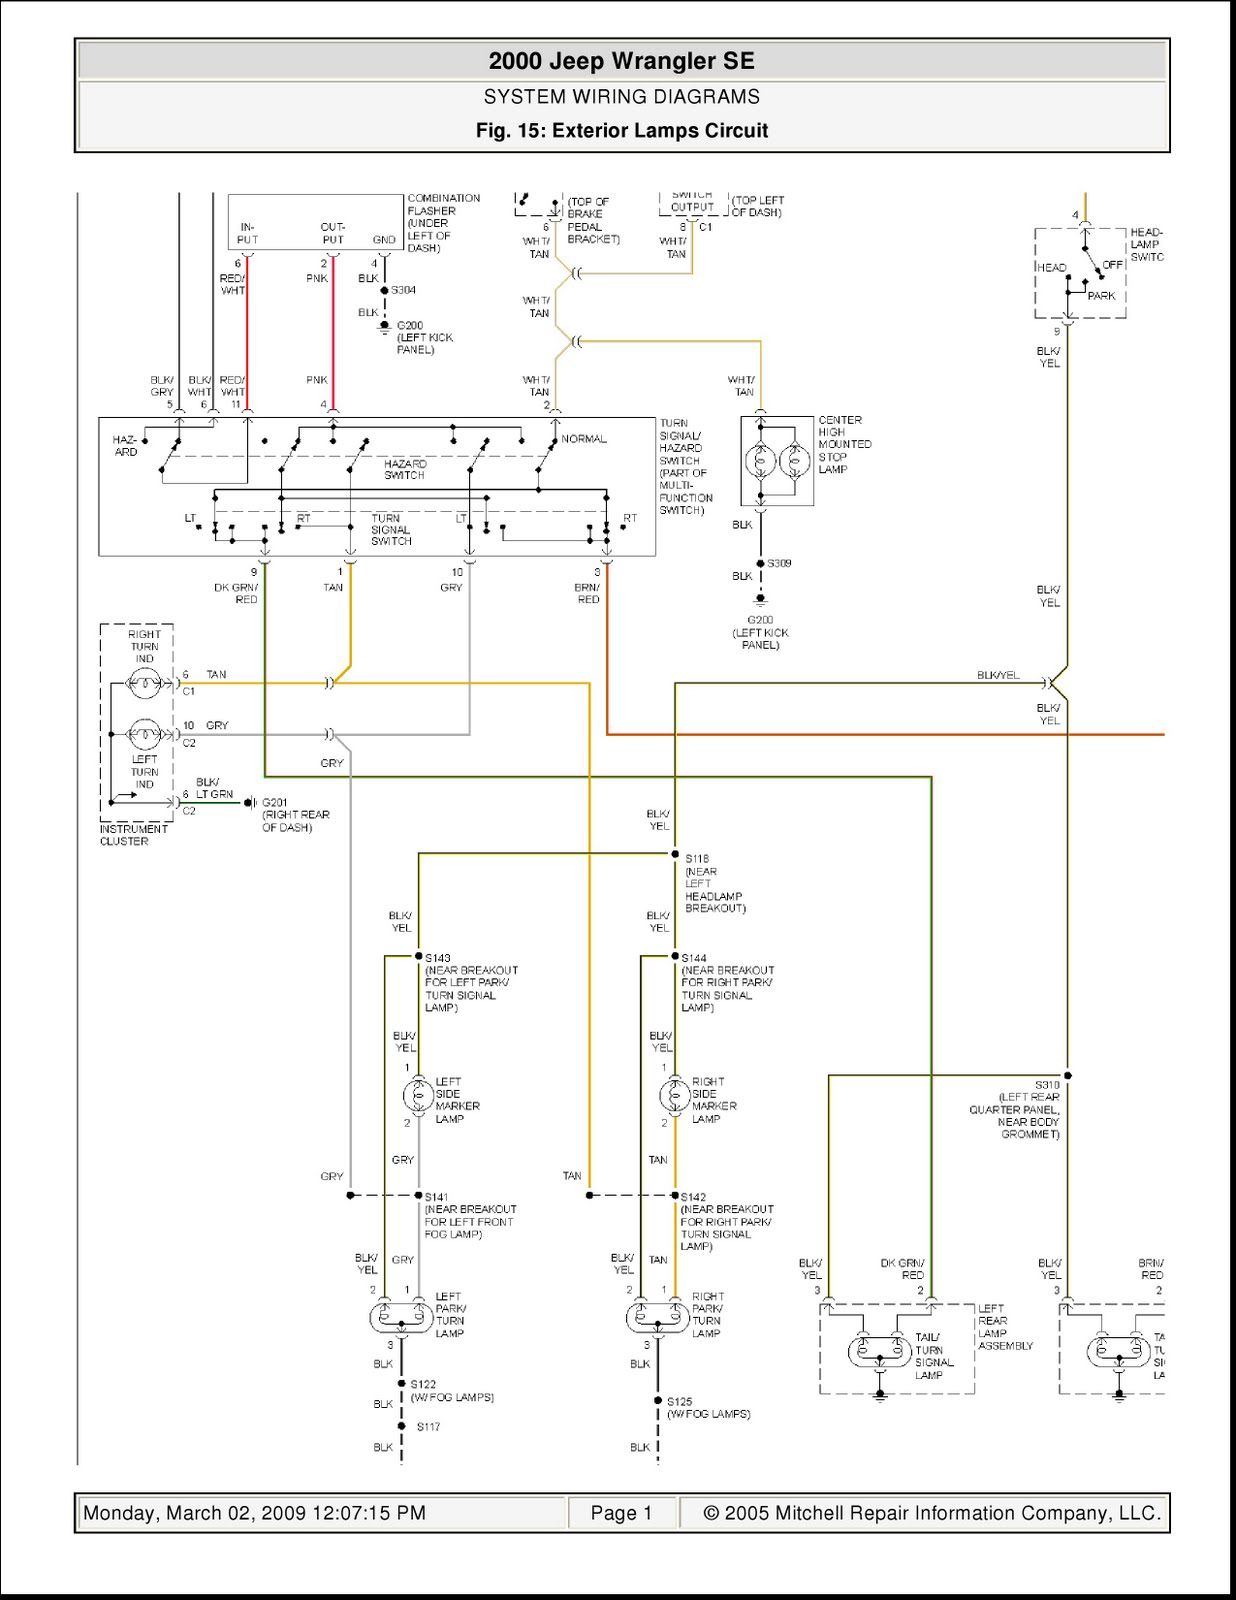 2000 Jeep Wrangler Ac Wiring Diagram Standard Cat5 Se System Diagrams Exterior